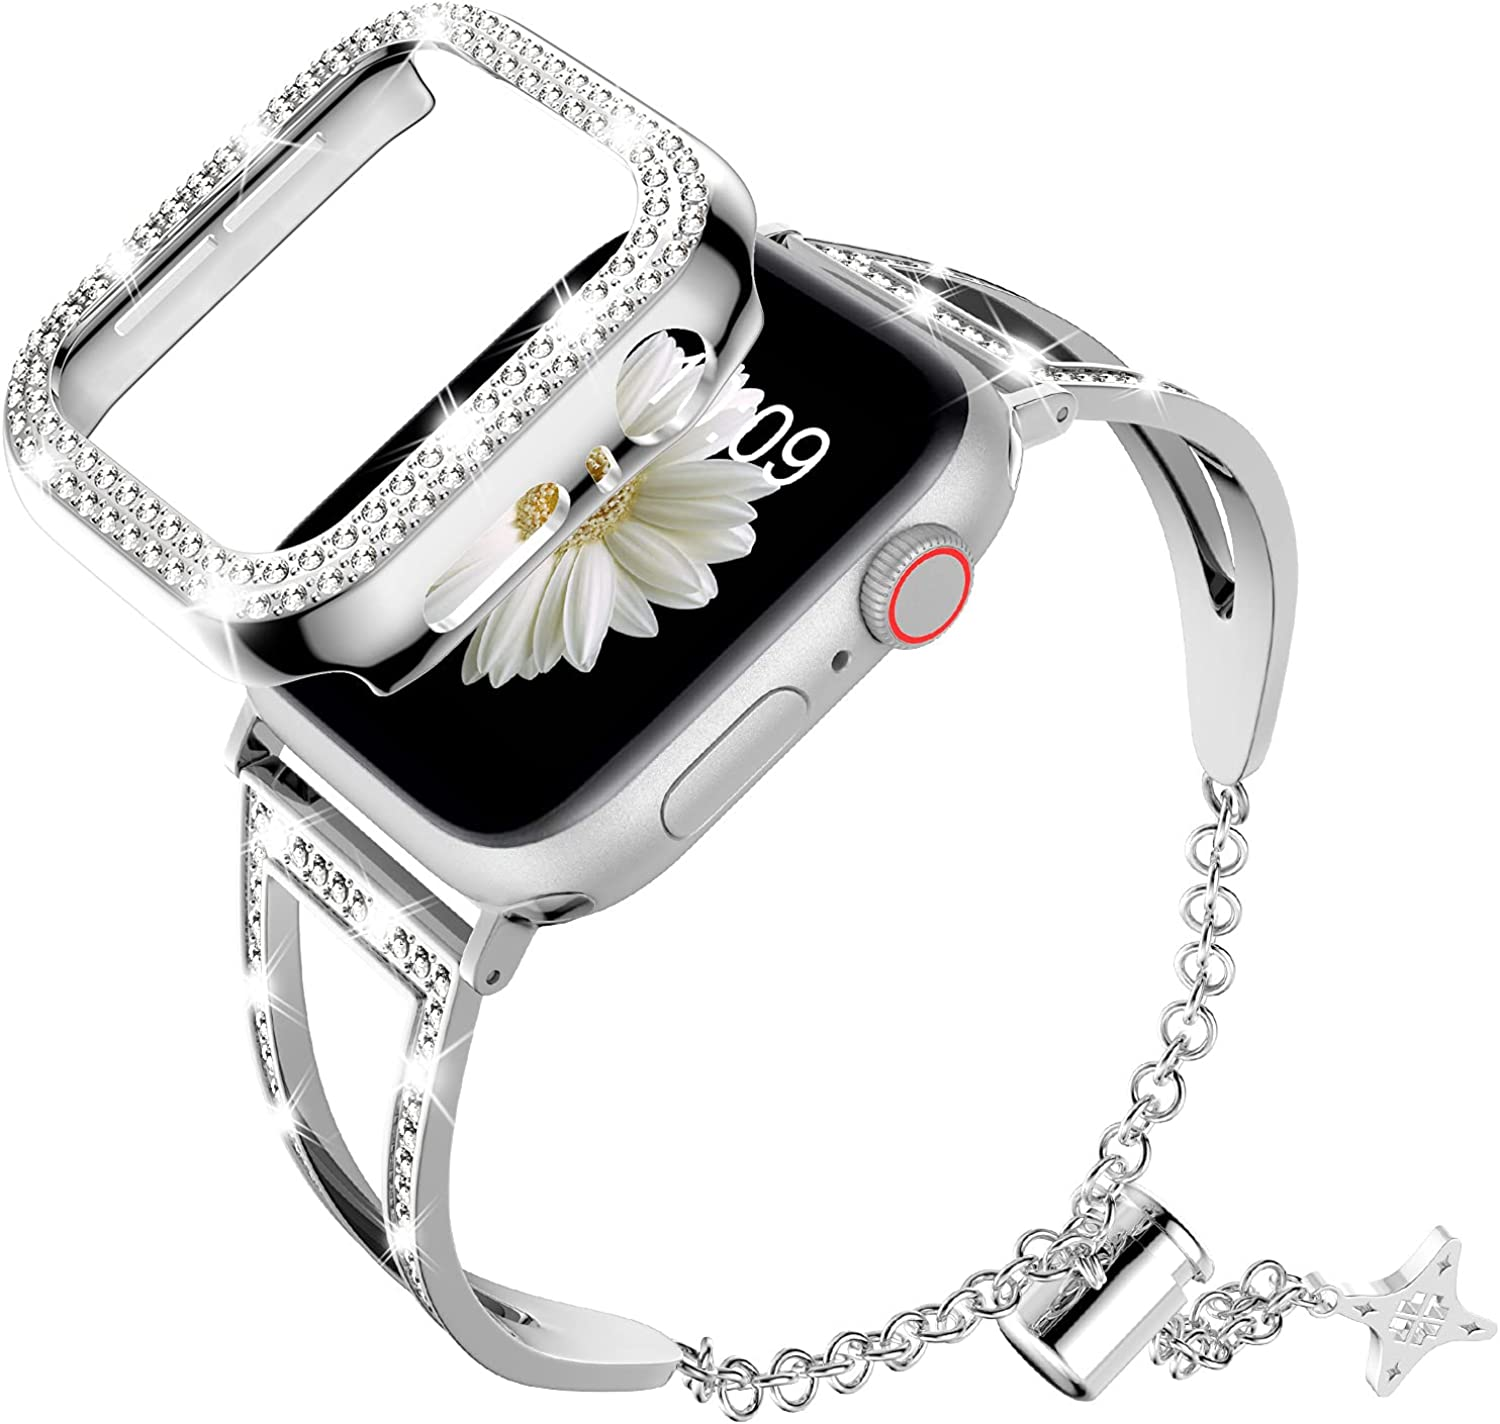 DABAOZA Compatible for Apple Watch Bling Band 38mm 42mm with Case, Women Girl Dressy Bling Diamond Metal Stainless Steel Bracelet Bangle Strap with Bumper for iWatch Series 3/2/1